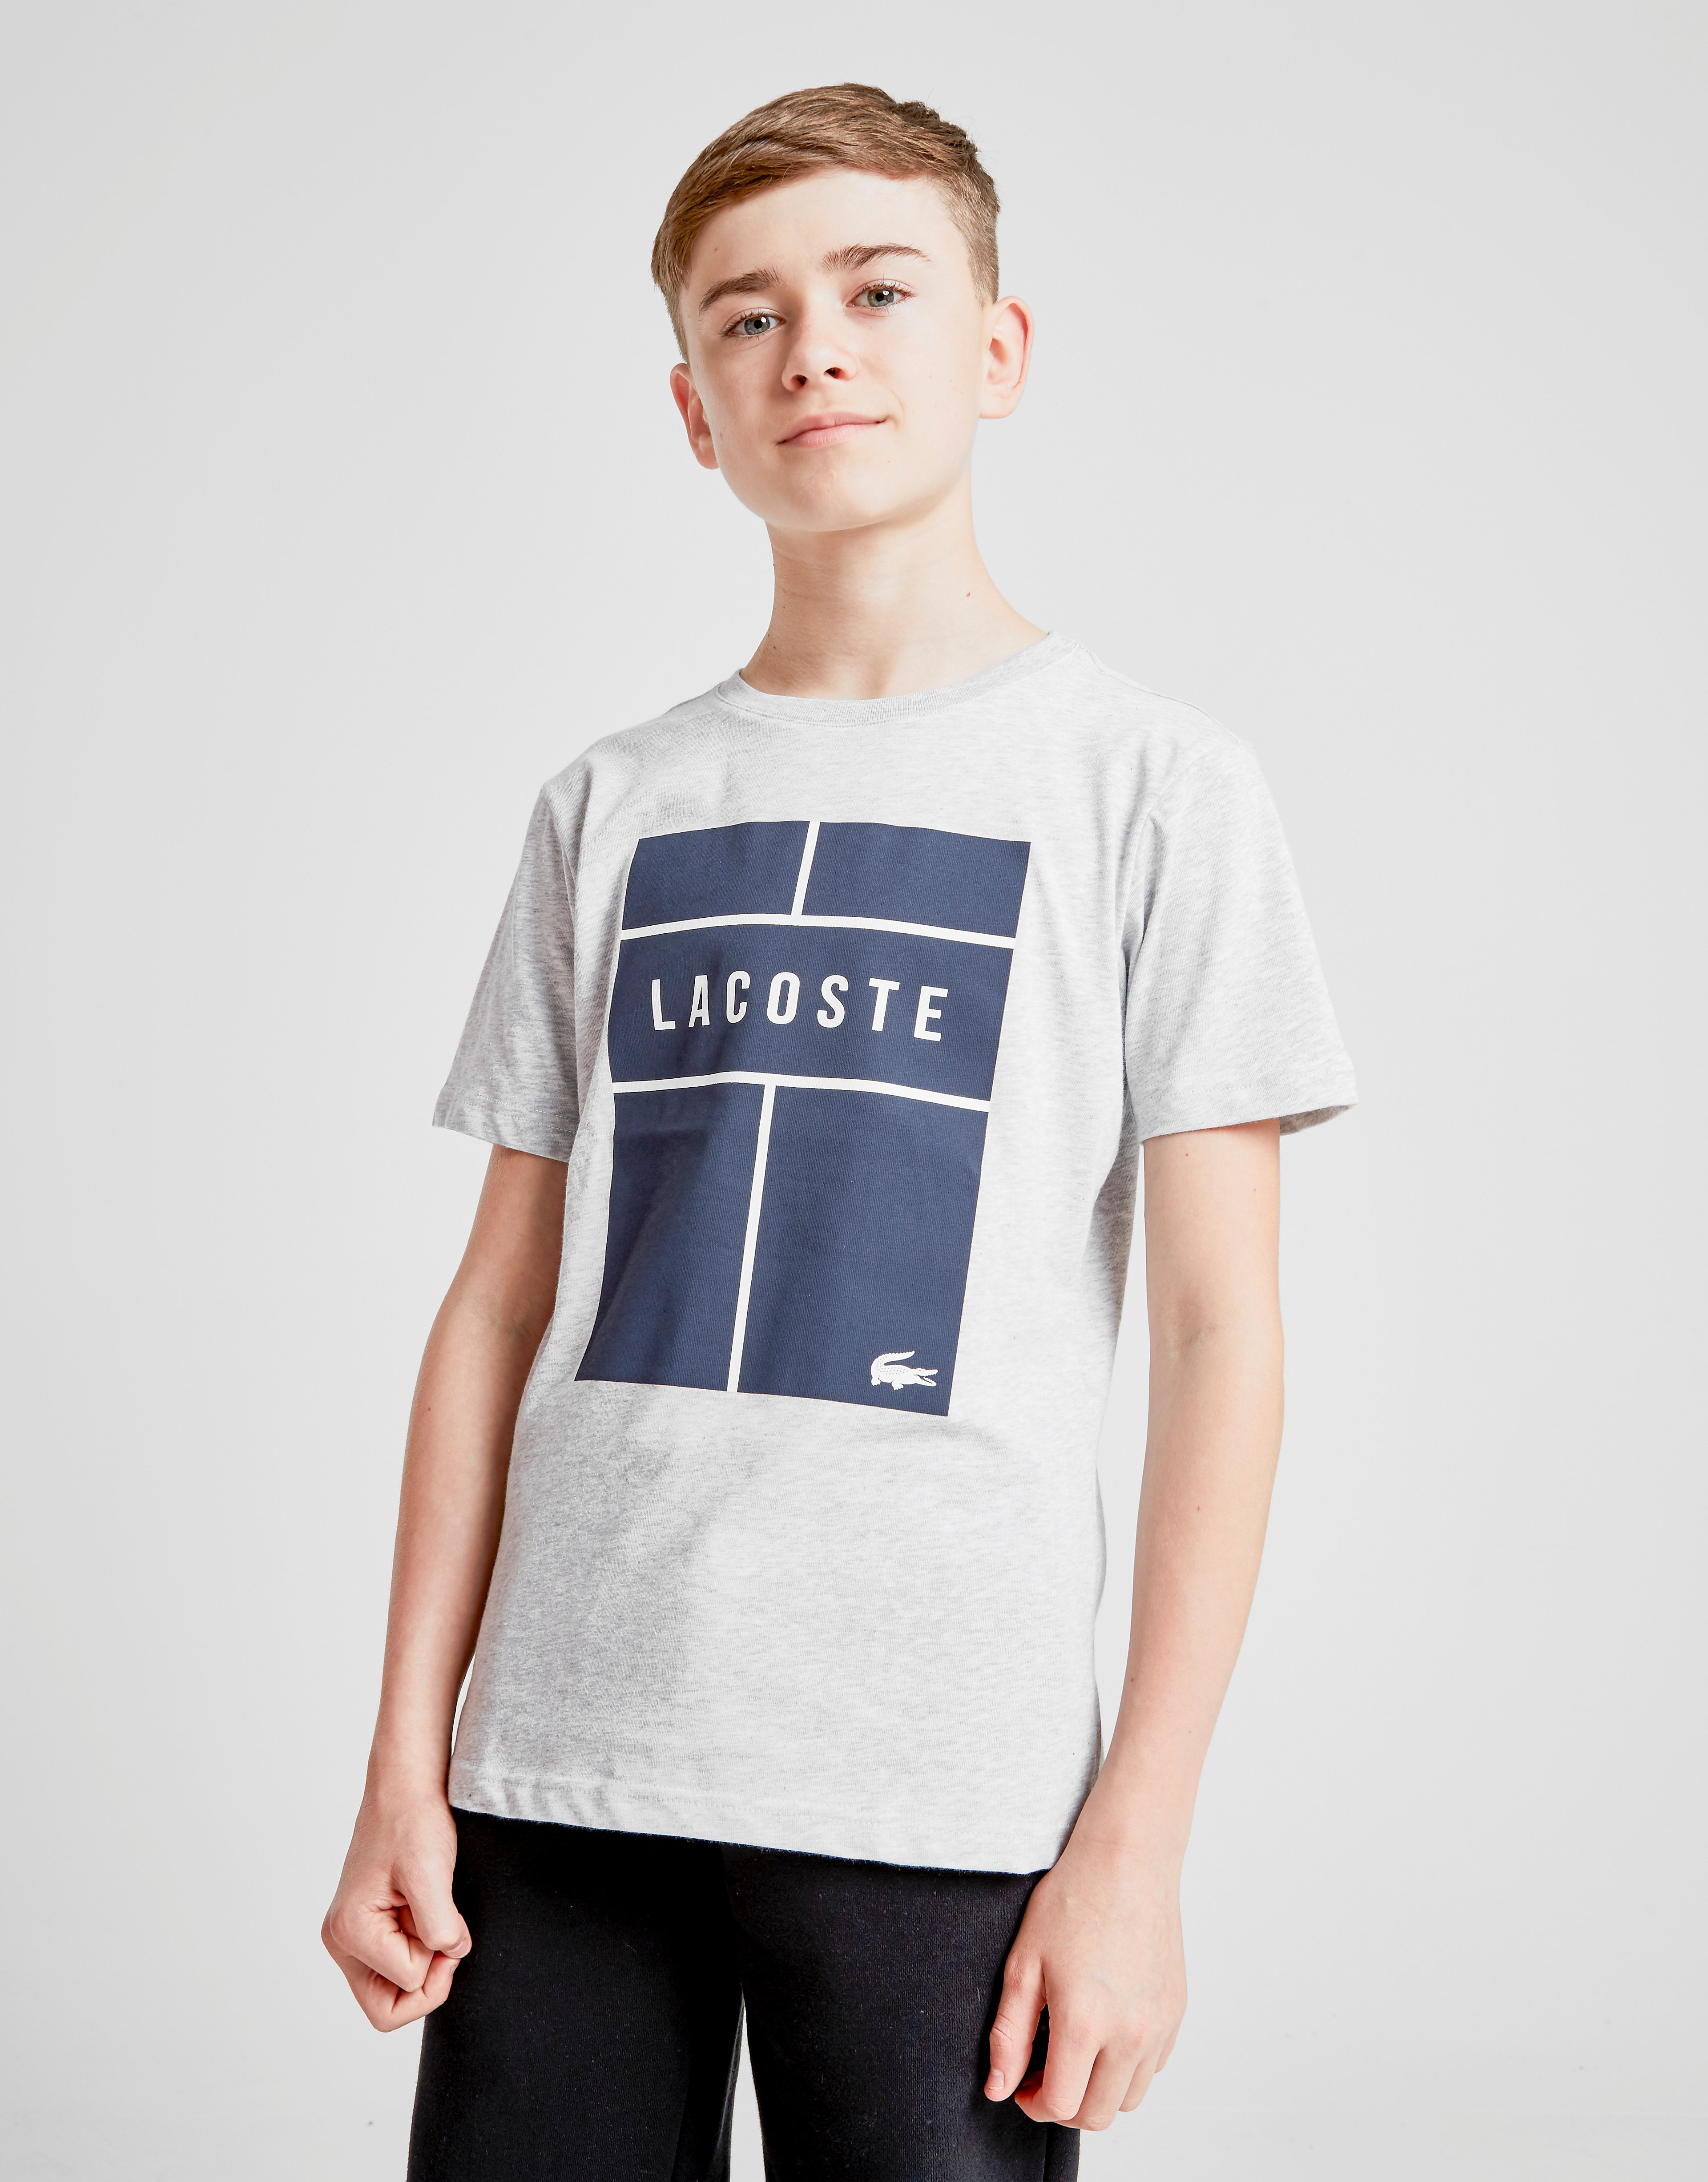 Lacoste Croc Box T-Shirt Junior - Grijs - Kind